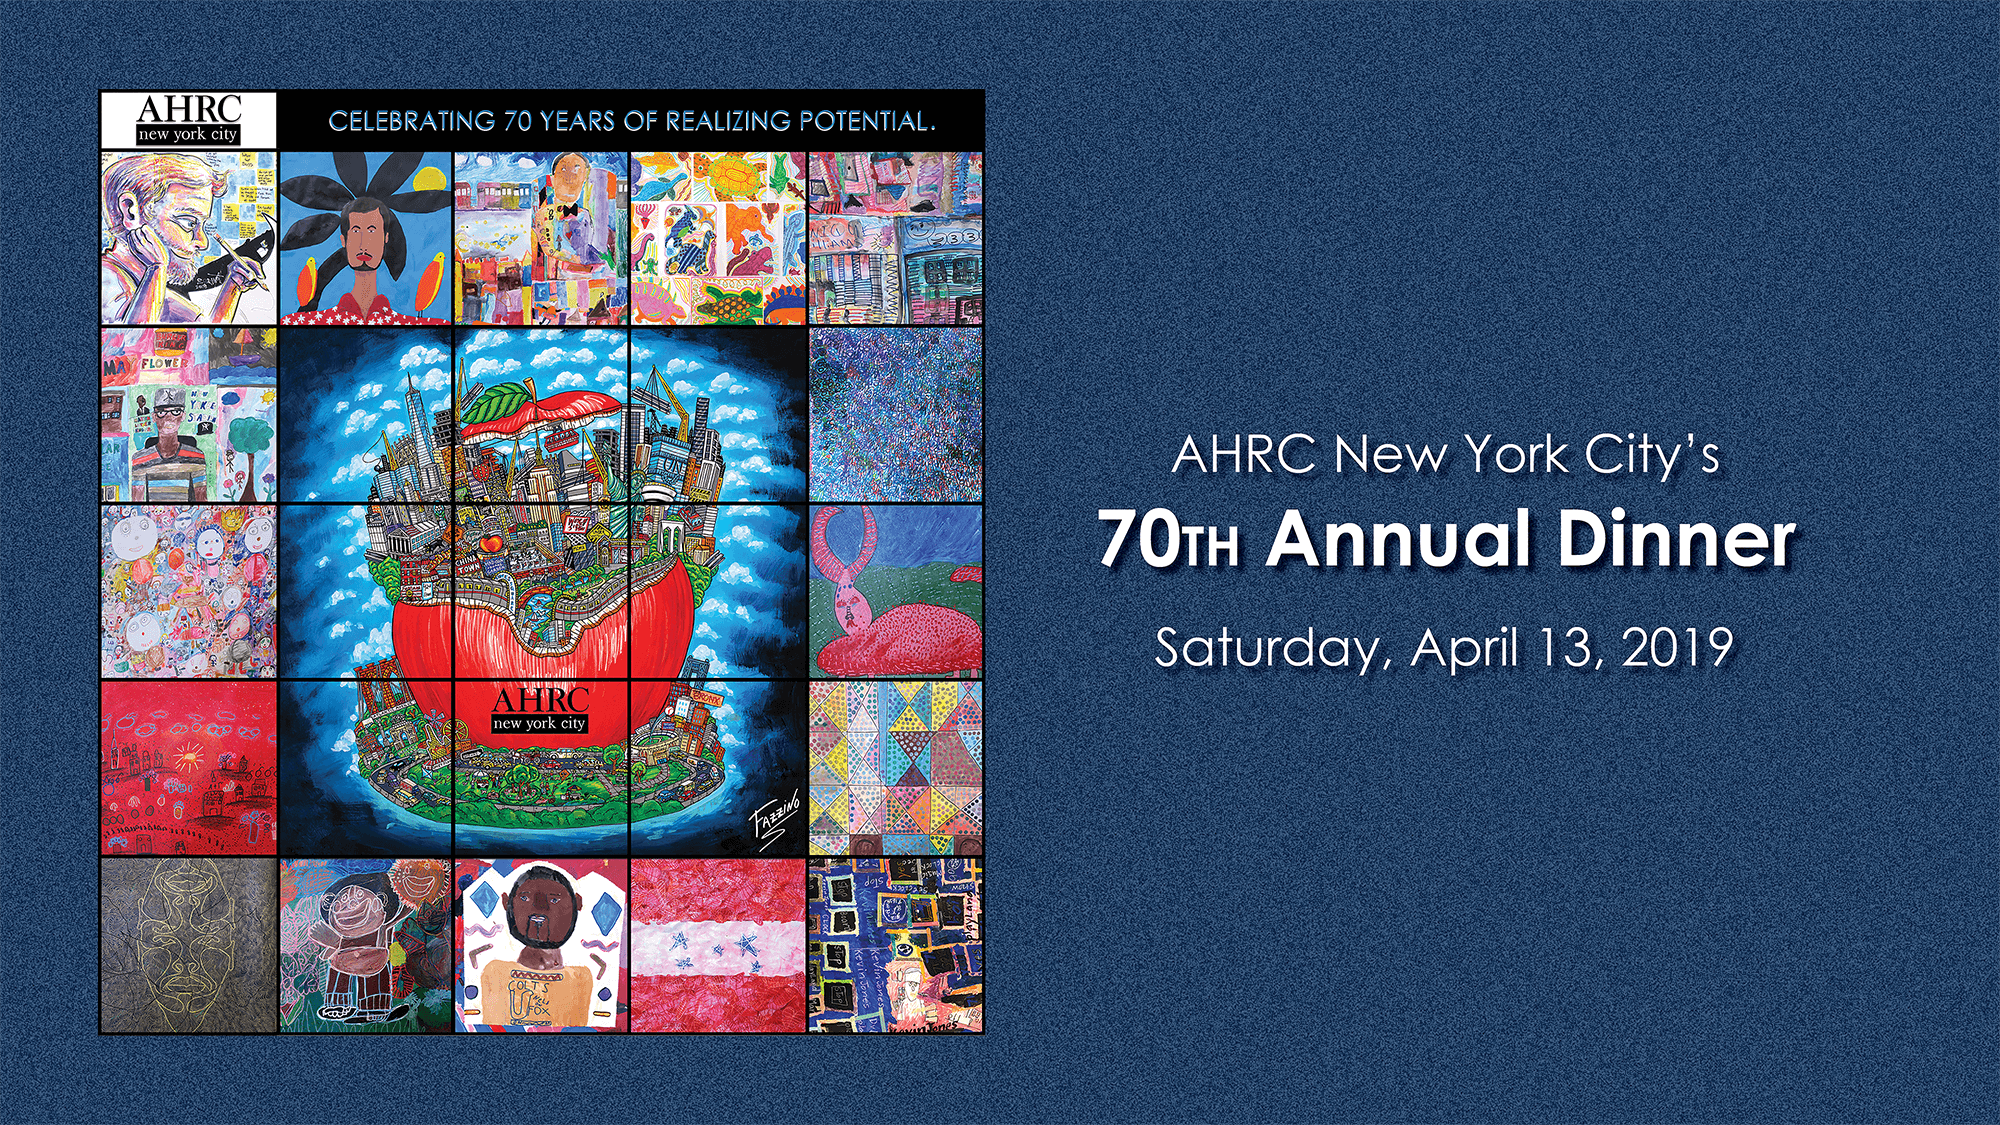 AHRC NYC's 70th Annual Dinner Journal